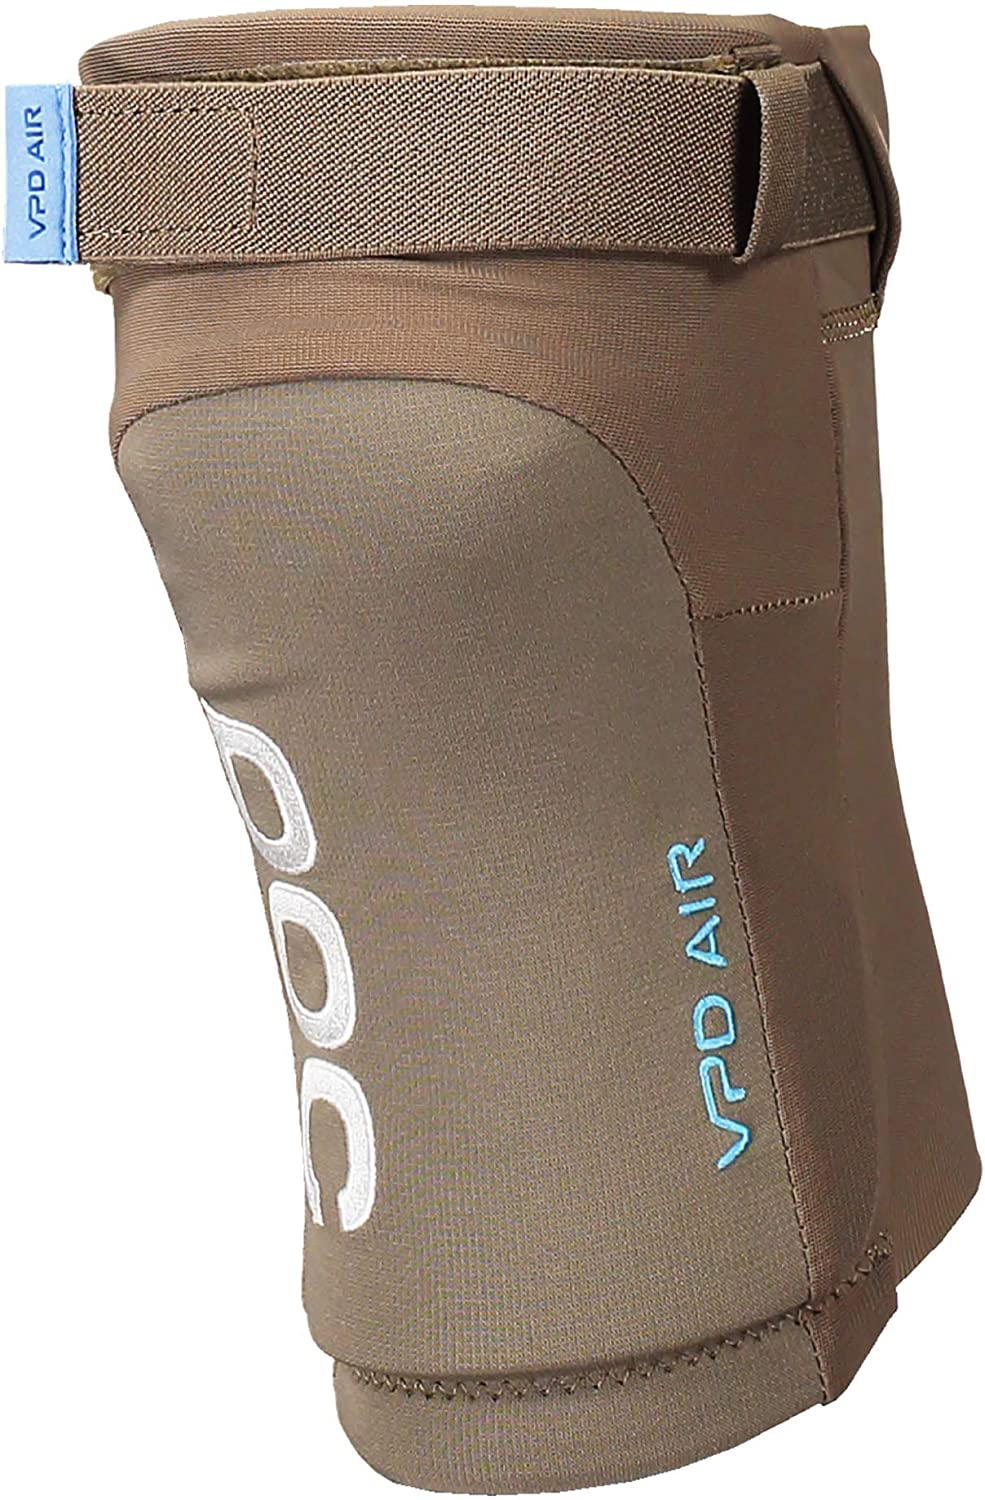 POC, Joint VPD Air Knee Pads, Lightweight Mountain Biking Armor for Men and Women